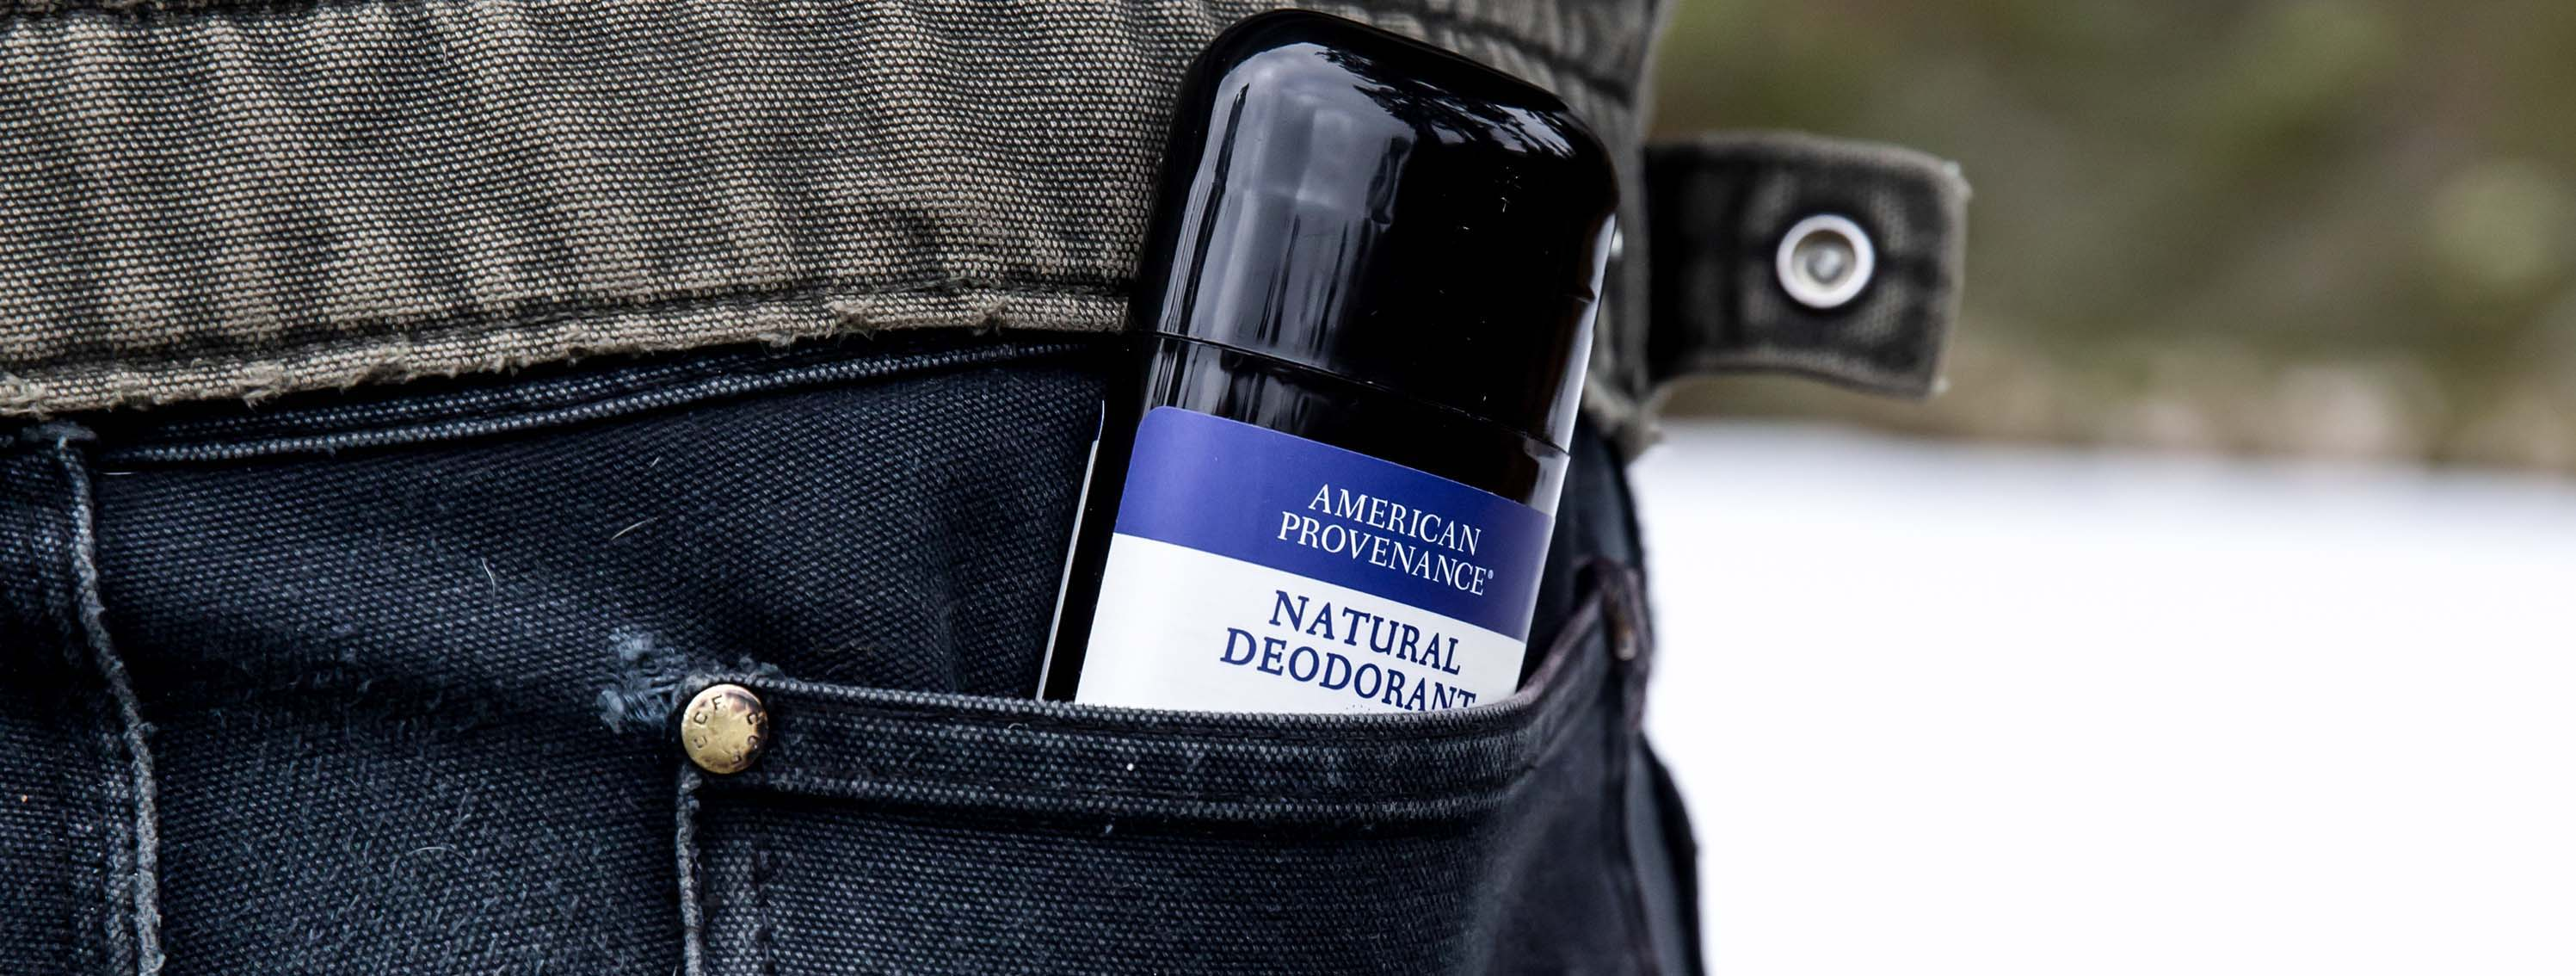 Turn Heads, Not Noses. Choose from any of the 12 scents of American Provenance Natural Deodorants